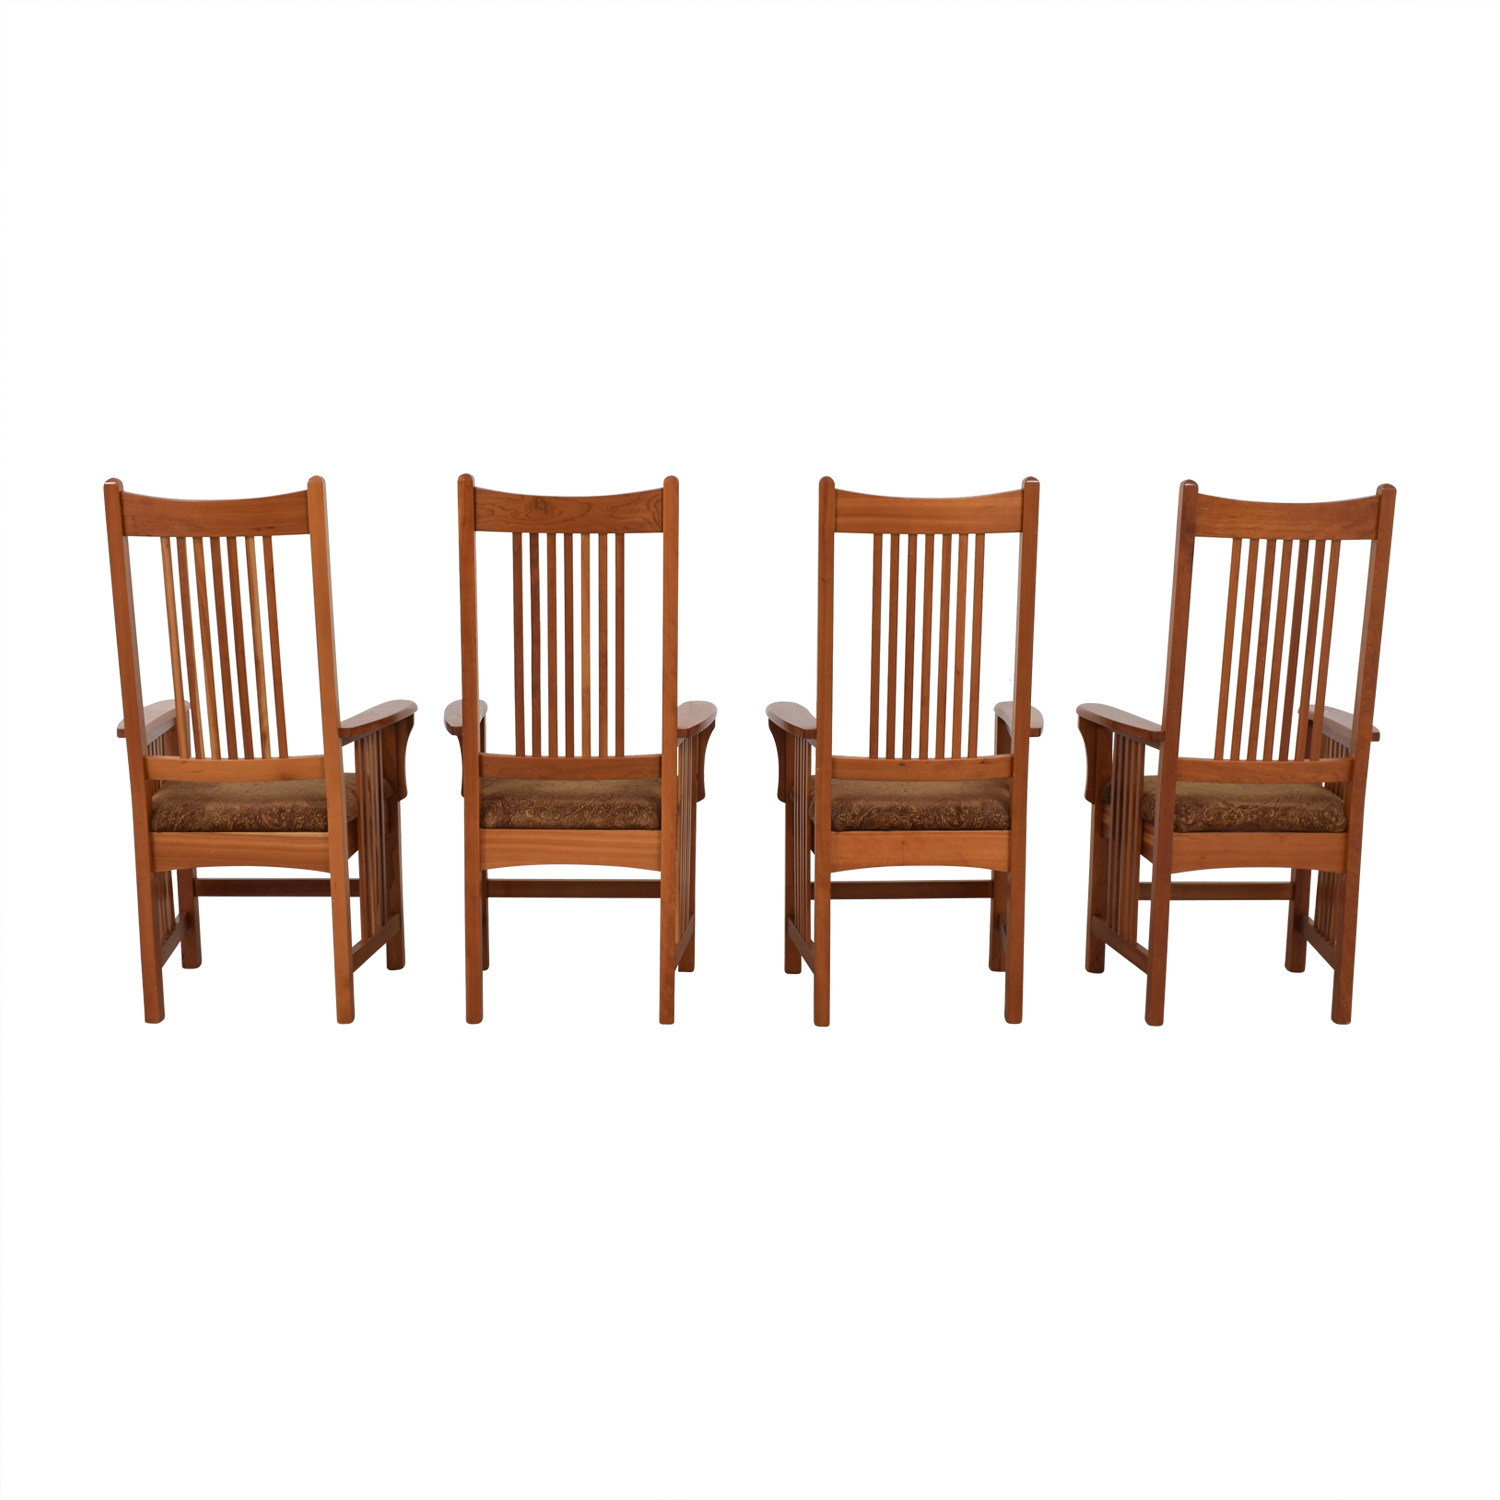 Arhaus Dining Chairs 85 Off Arhaus Arhaus Furniture Mission Style Dining